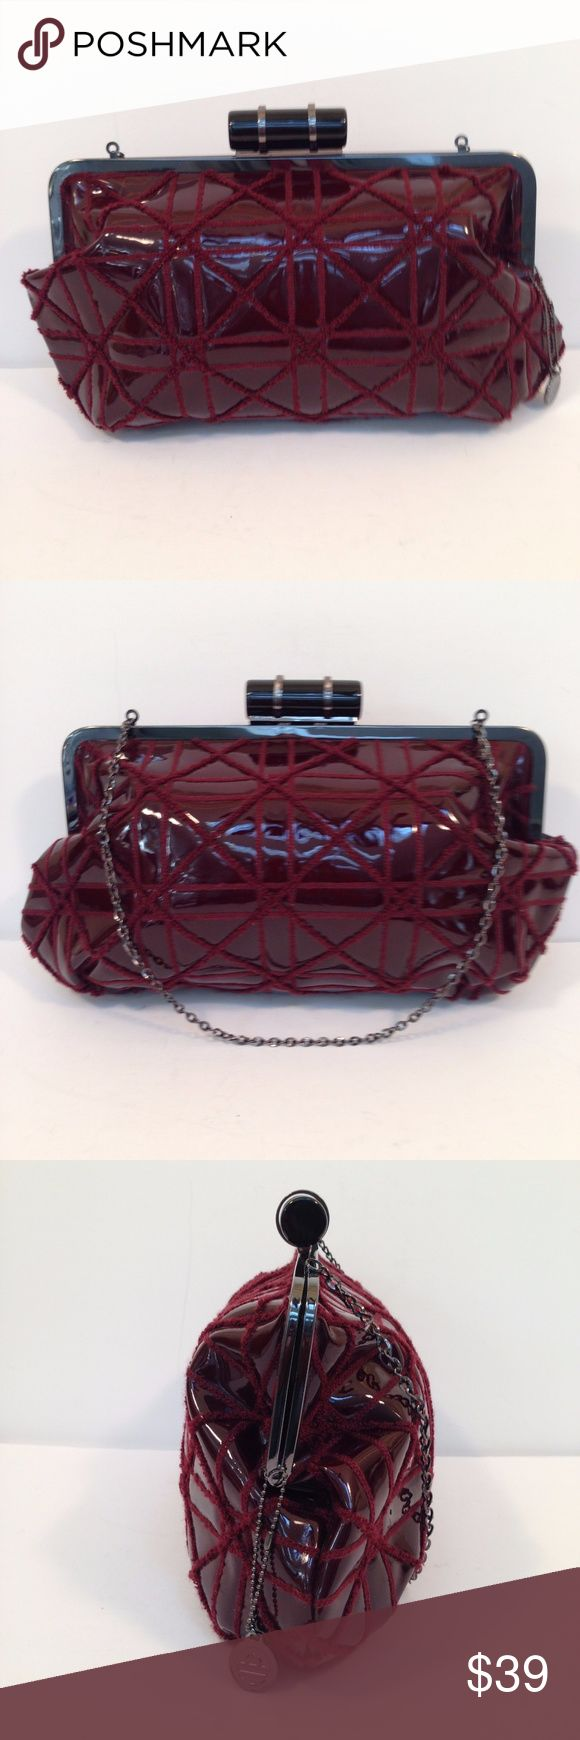 Womens Big Buddha Burgundy Bag Purse Clutch Womens Big Buddha Burgundy Bag Purse Clutch Vintage Faux Patent Leather Measures 14x10x2 with 13 inch drop on metal chain Can be worn as a purse, shoulder bag or clutch with chain inside Overall good condition.   Scratches noticeable upon close inspection of metal of black closure clip.  Not easily noticeable from a regular distance.  1 interior zip pocket Removable Big Buddha Key Chain Big Buddha Bags Shoulder Bags